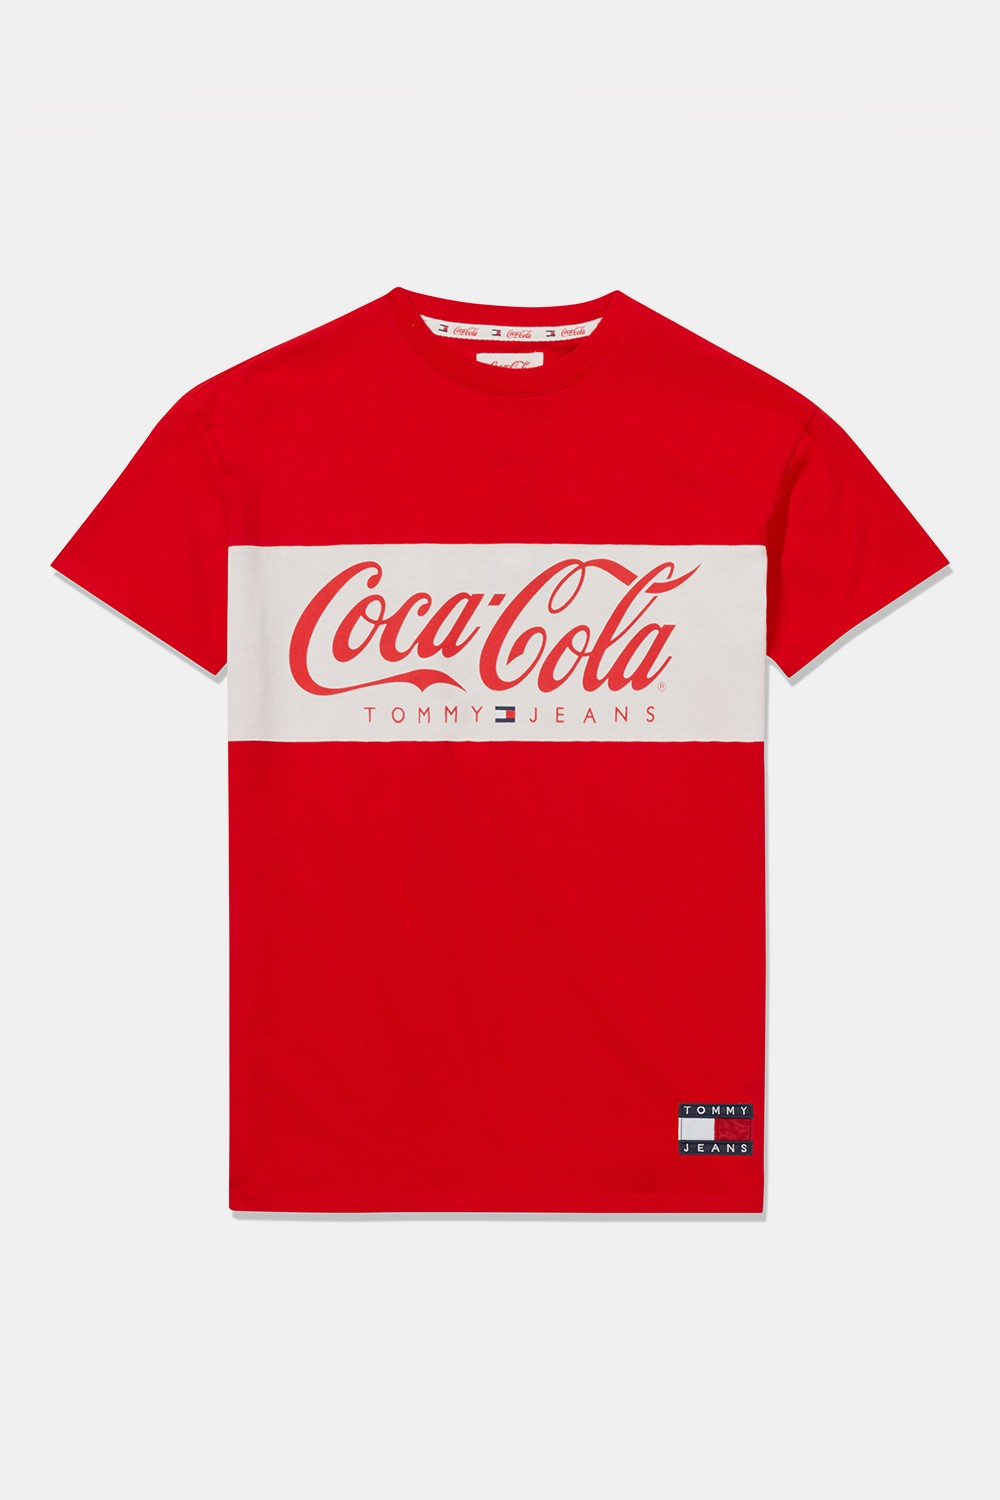 tommy-jeans-coca-cola-ss19-capsule-collection-17.jpg